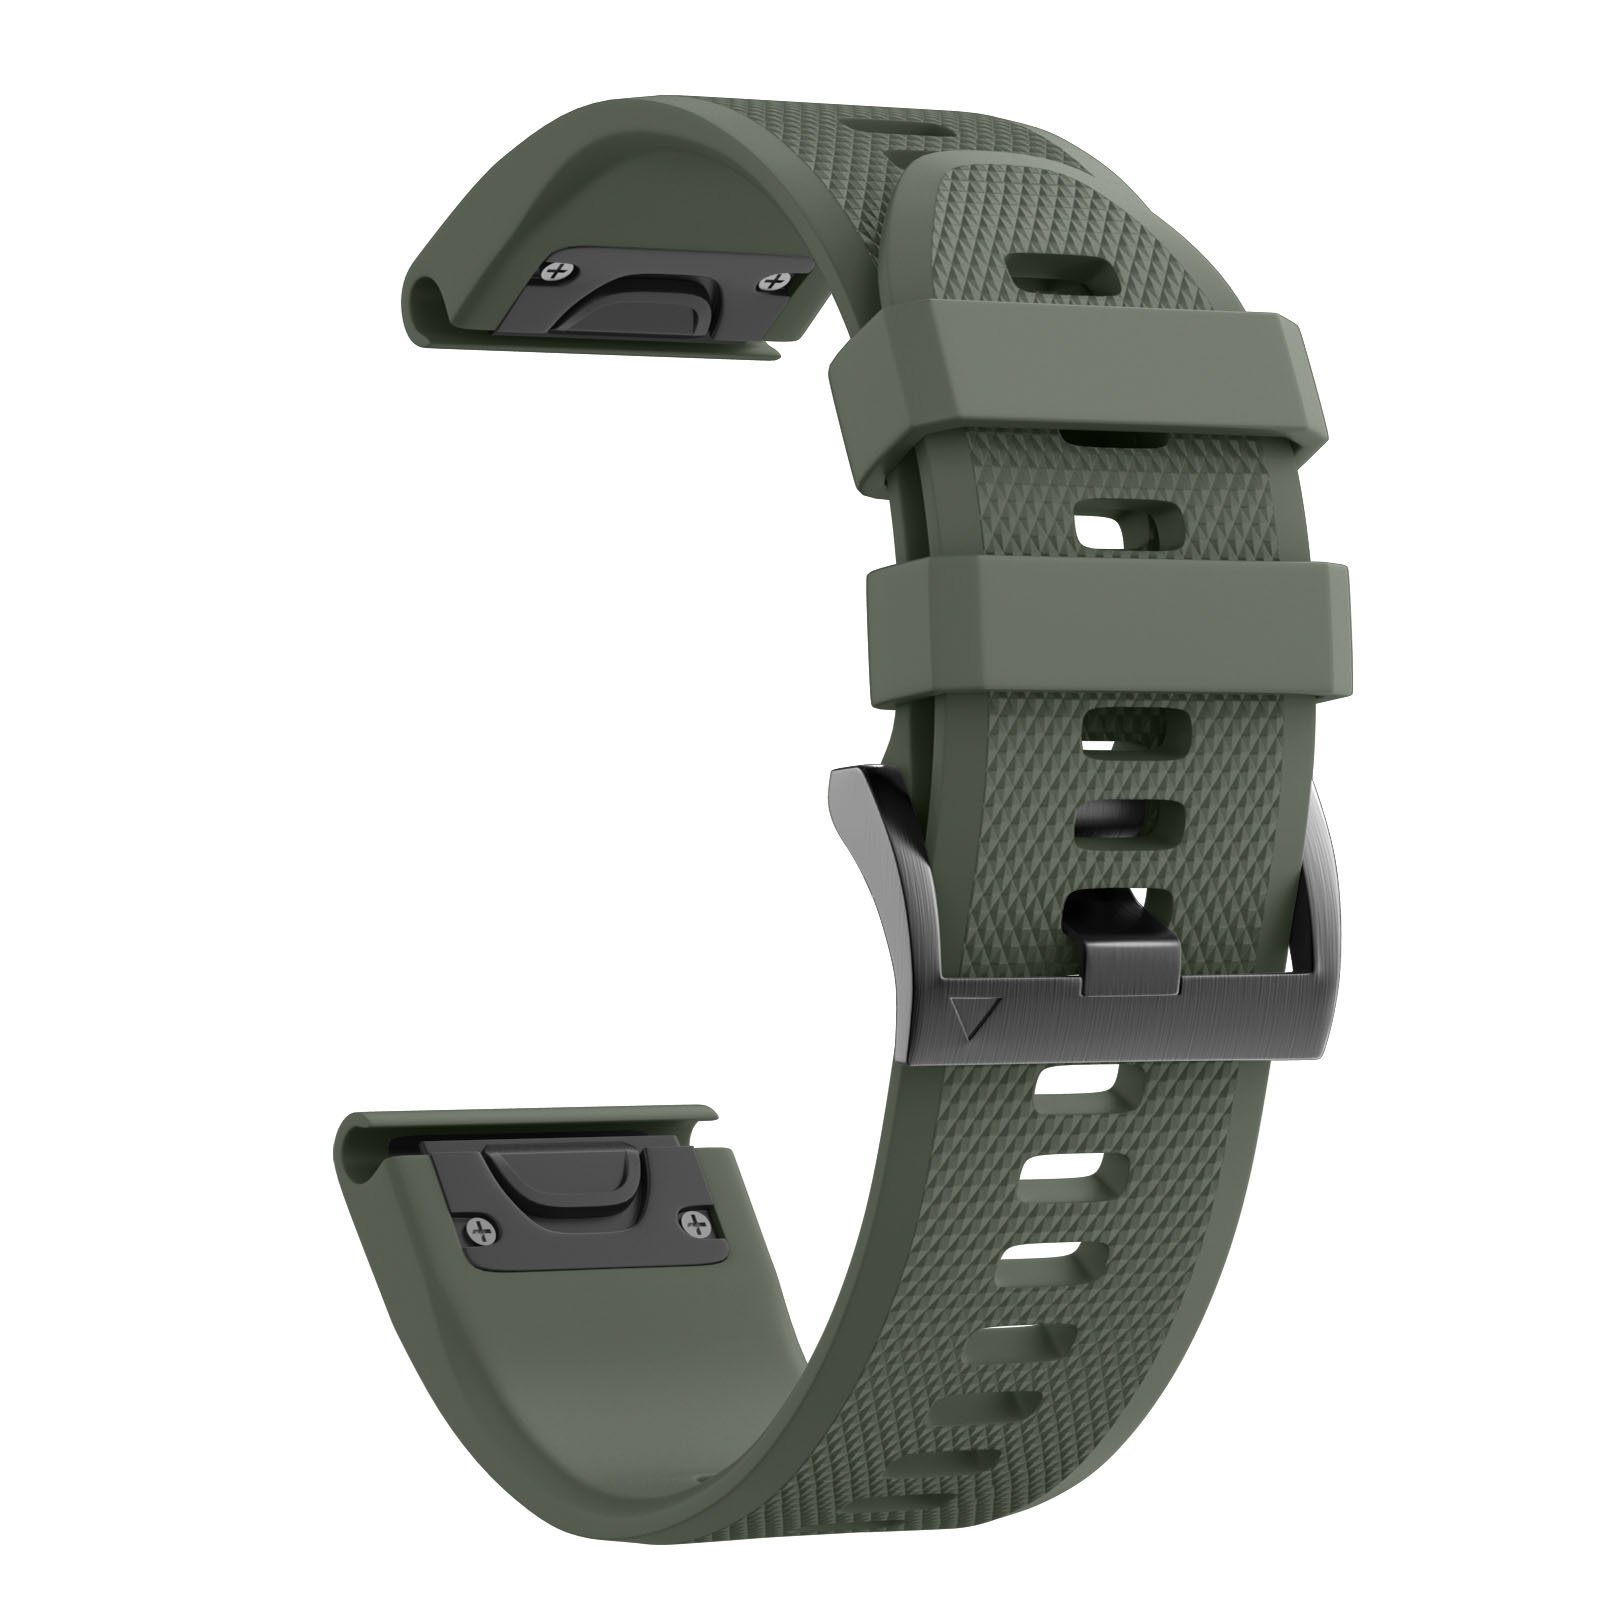 ANCOOL Compatible with Fenix 5 Band Easy Fit 22mm Width Soft Silicone Watch Strap Replacement for Garmin Fenix 5/Fenix 5 Plus/Forerunner 935/Approach S60/Quatix 5 - Army Green by ANCOOL